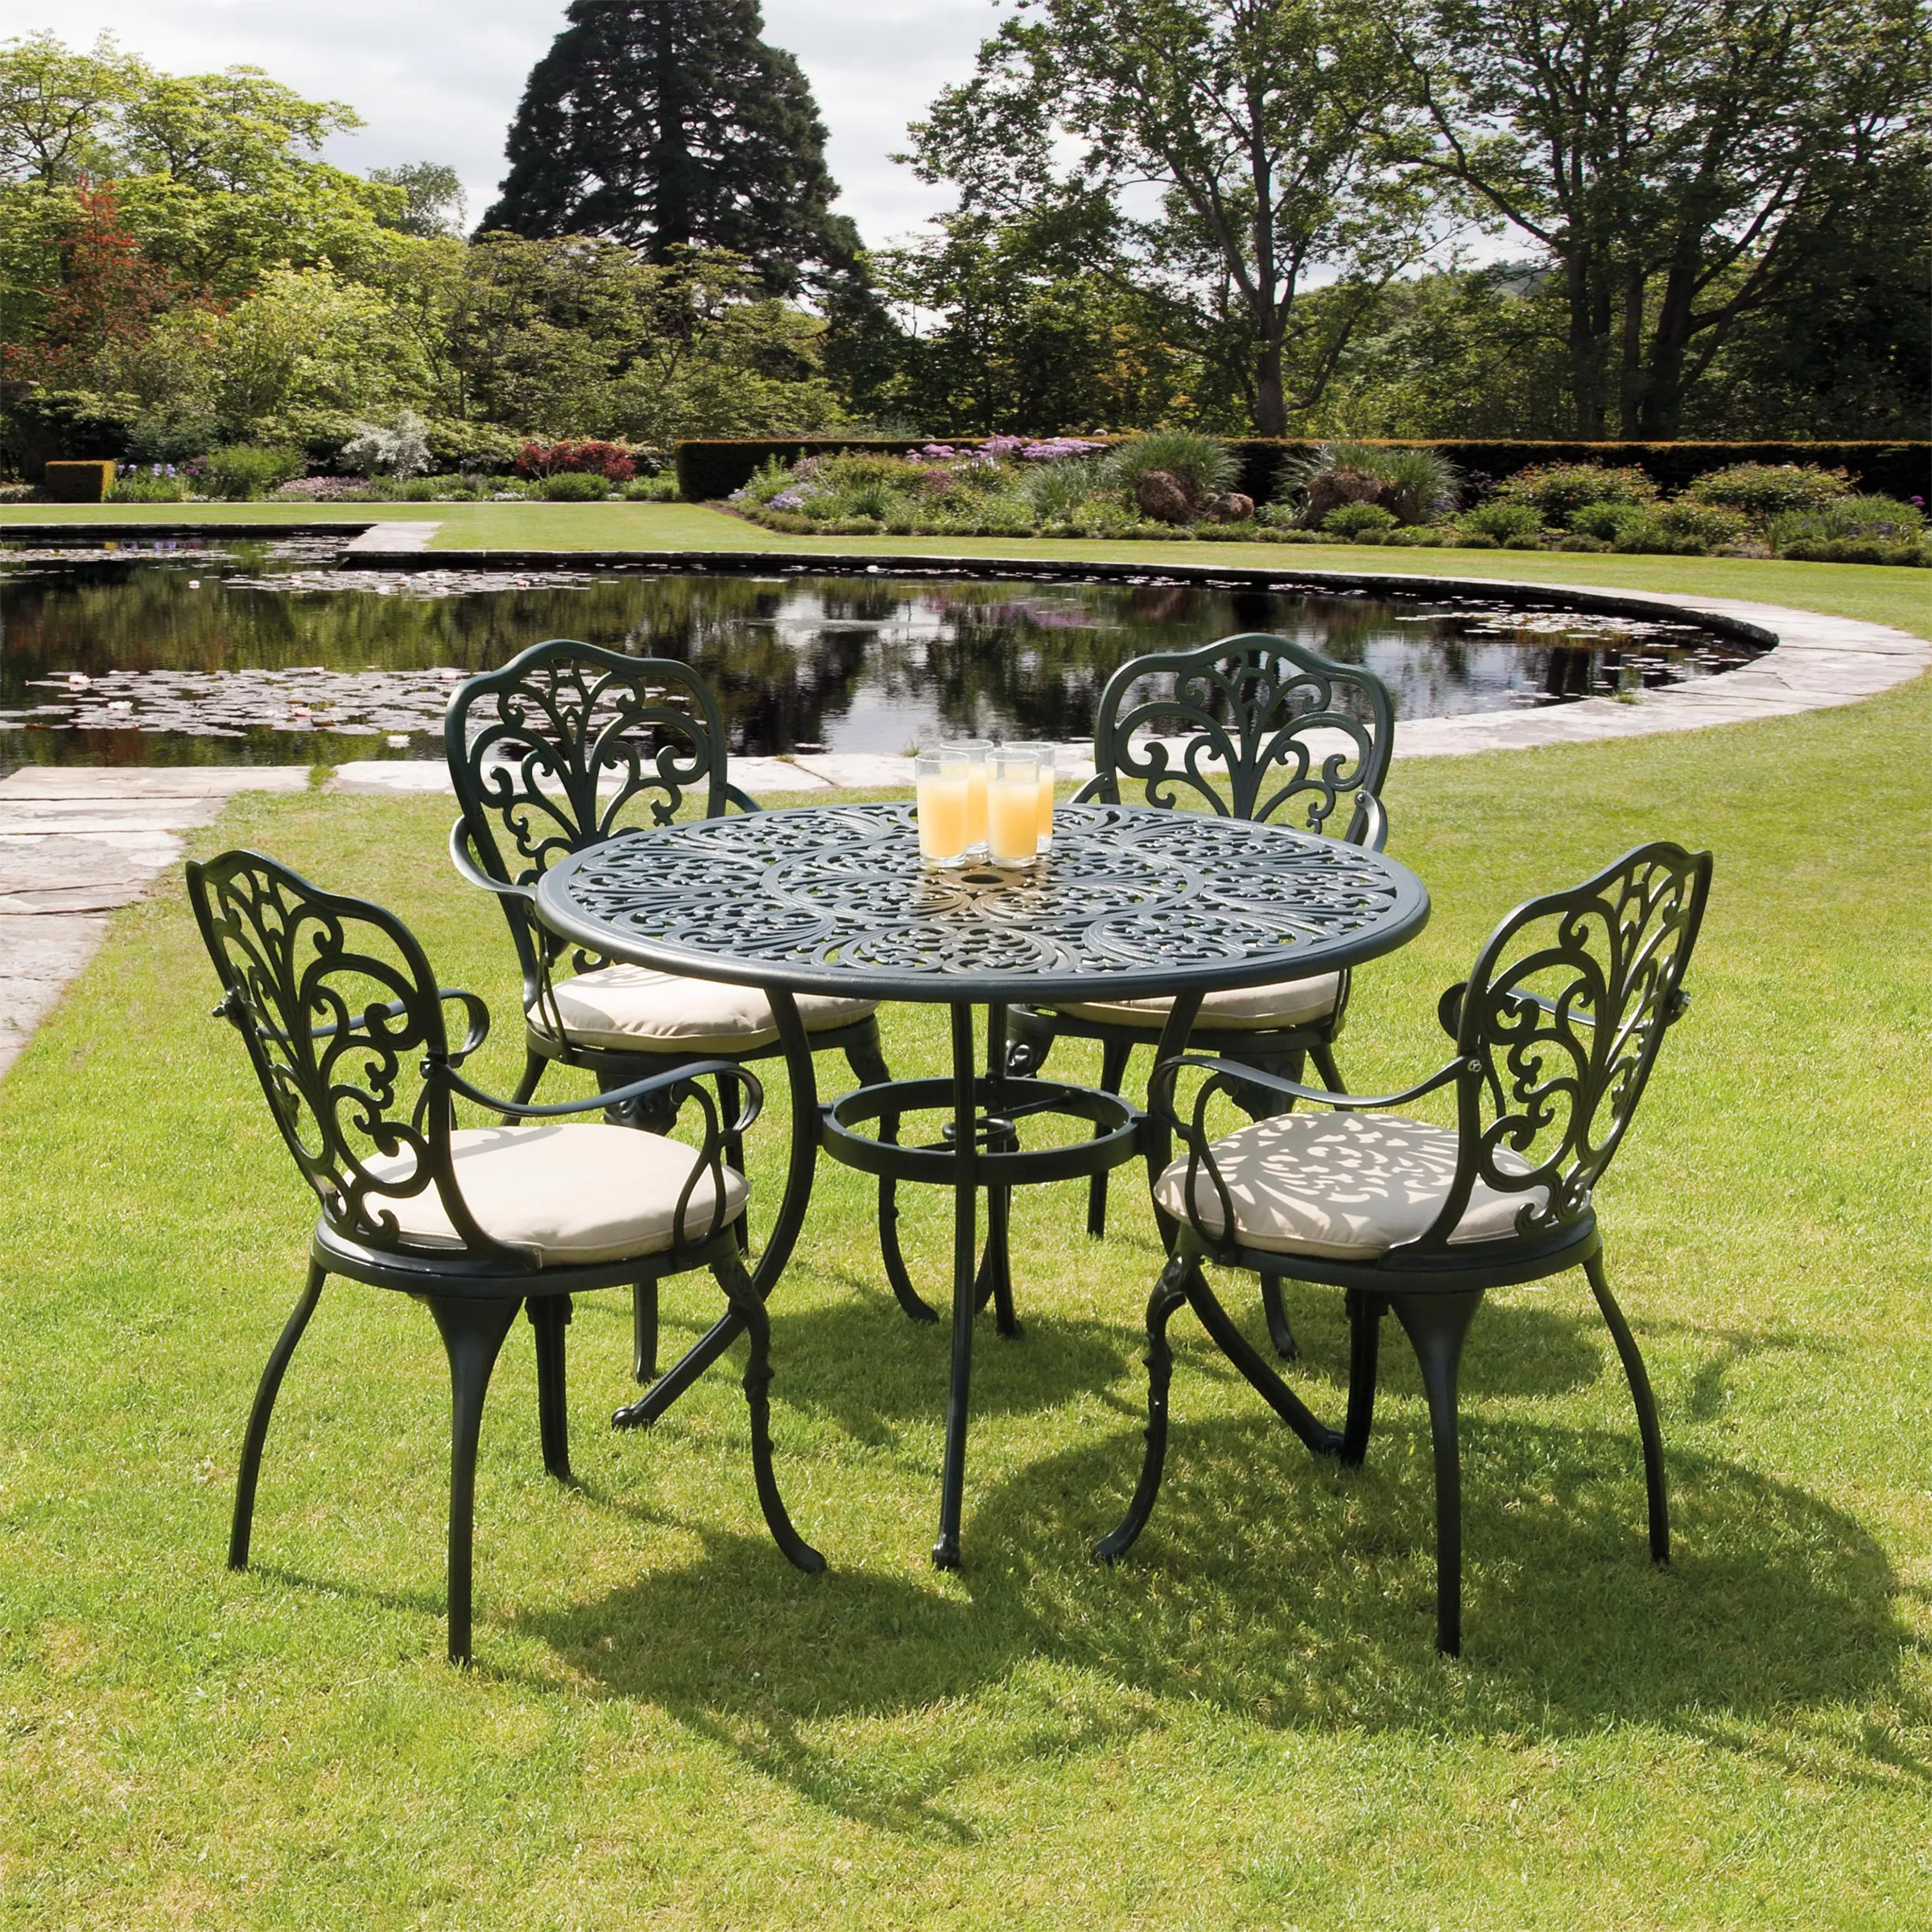 4 seater table and chairs white wood desk chair with wheels suntime sussex aluminium outdoor dining